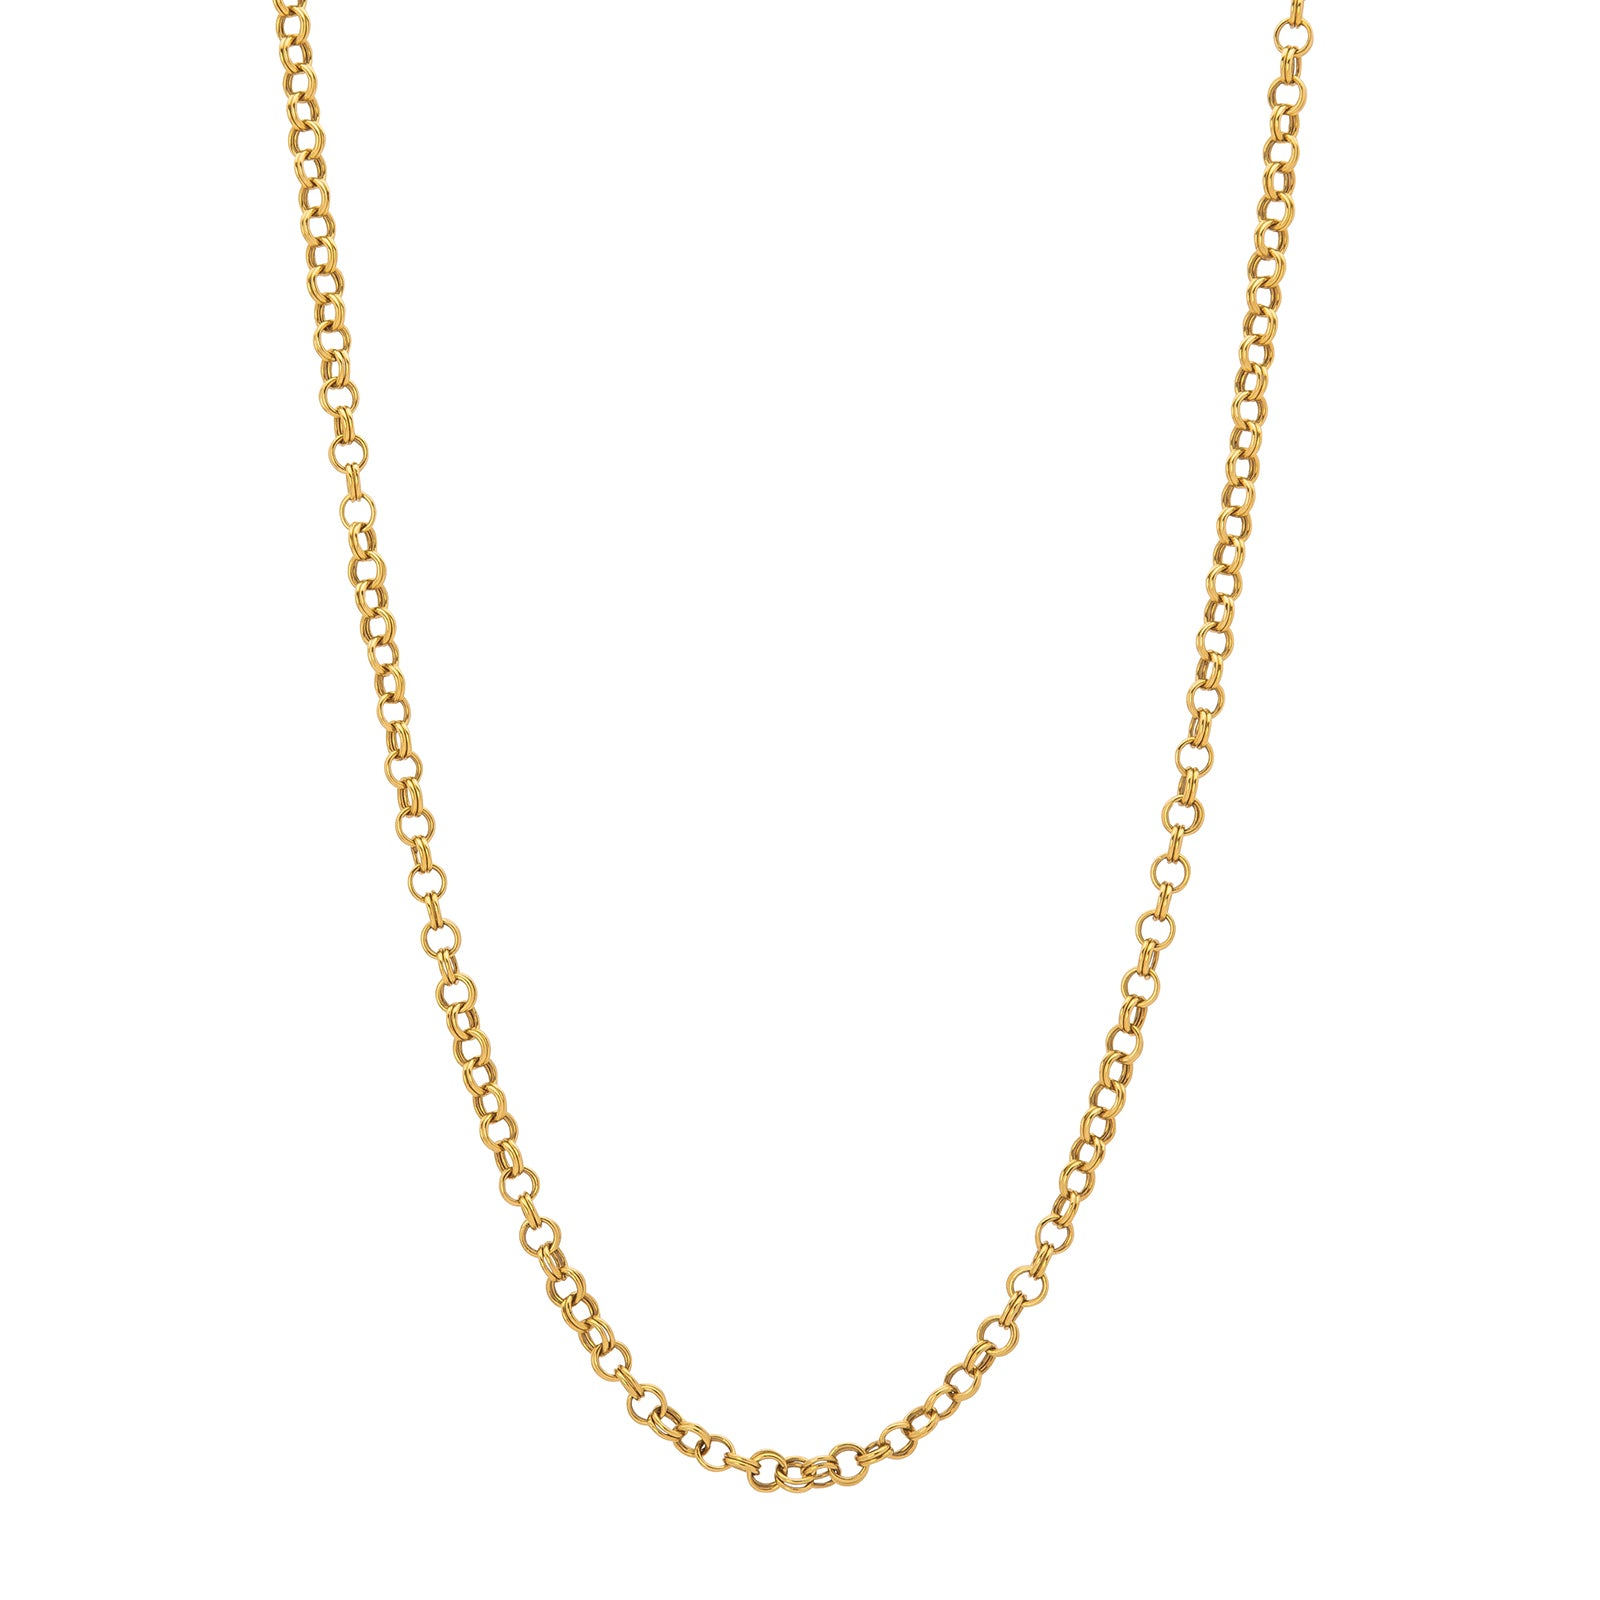 Eli Halili Double Link Chain - Necklaces - Broken English Jewelry